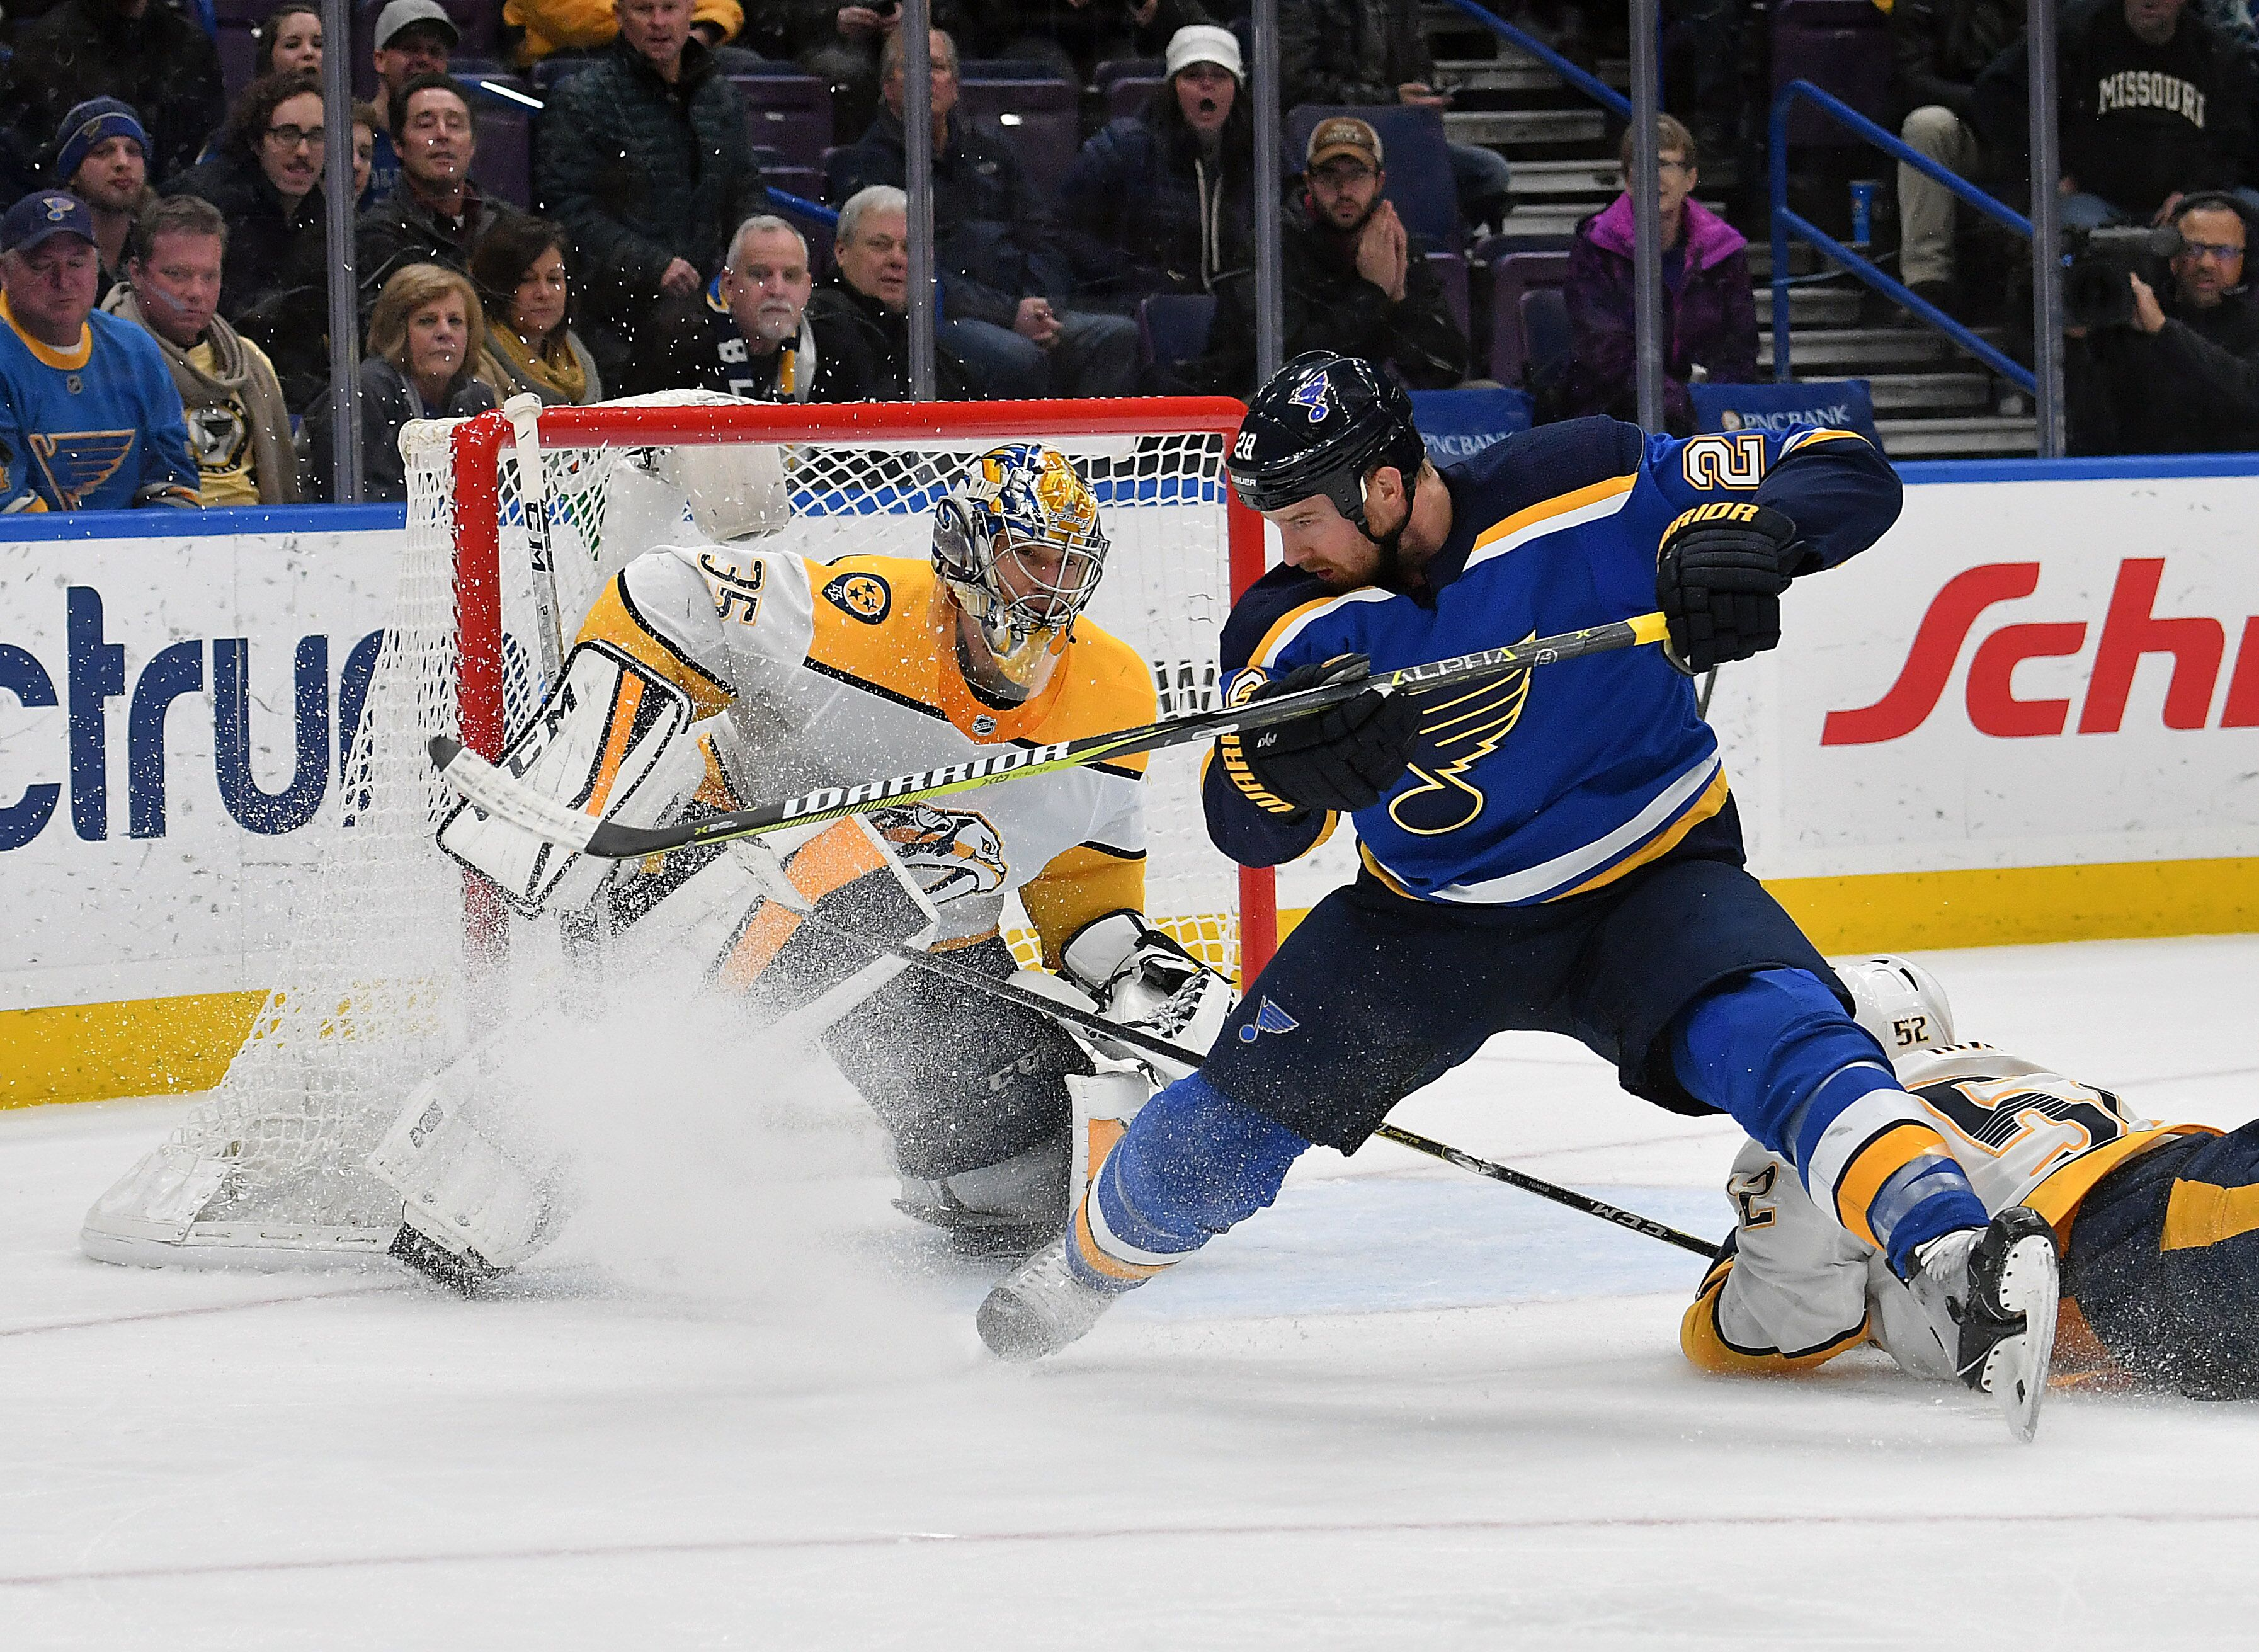 899171544-nhl-dec-27-predators-at-blues.jpg